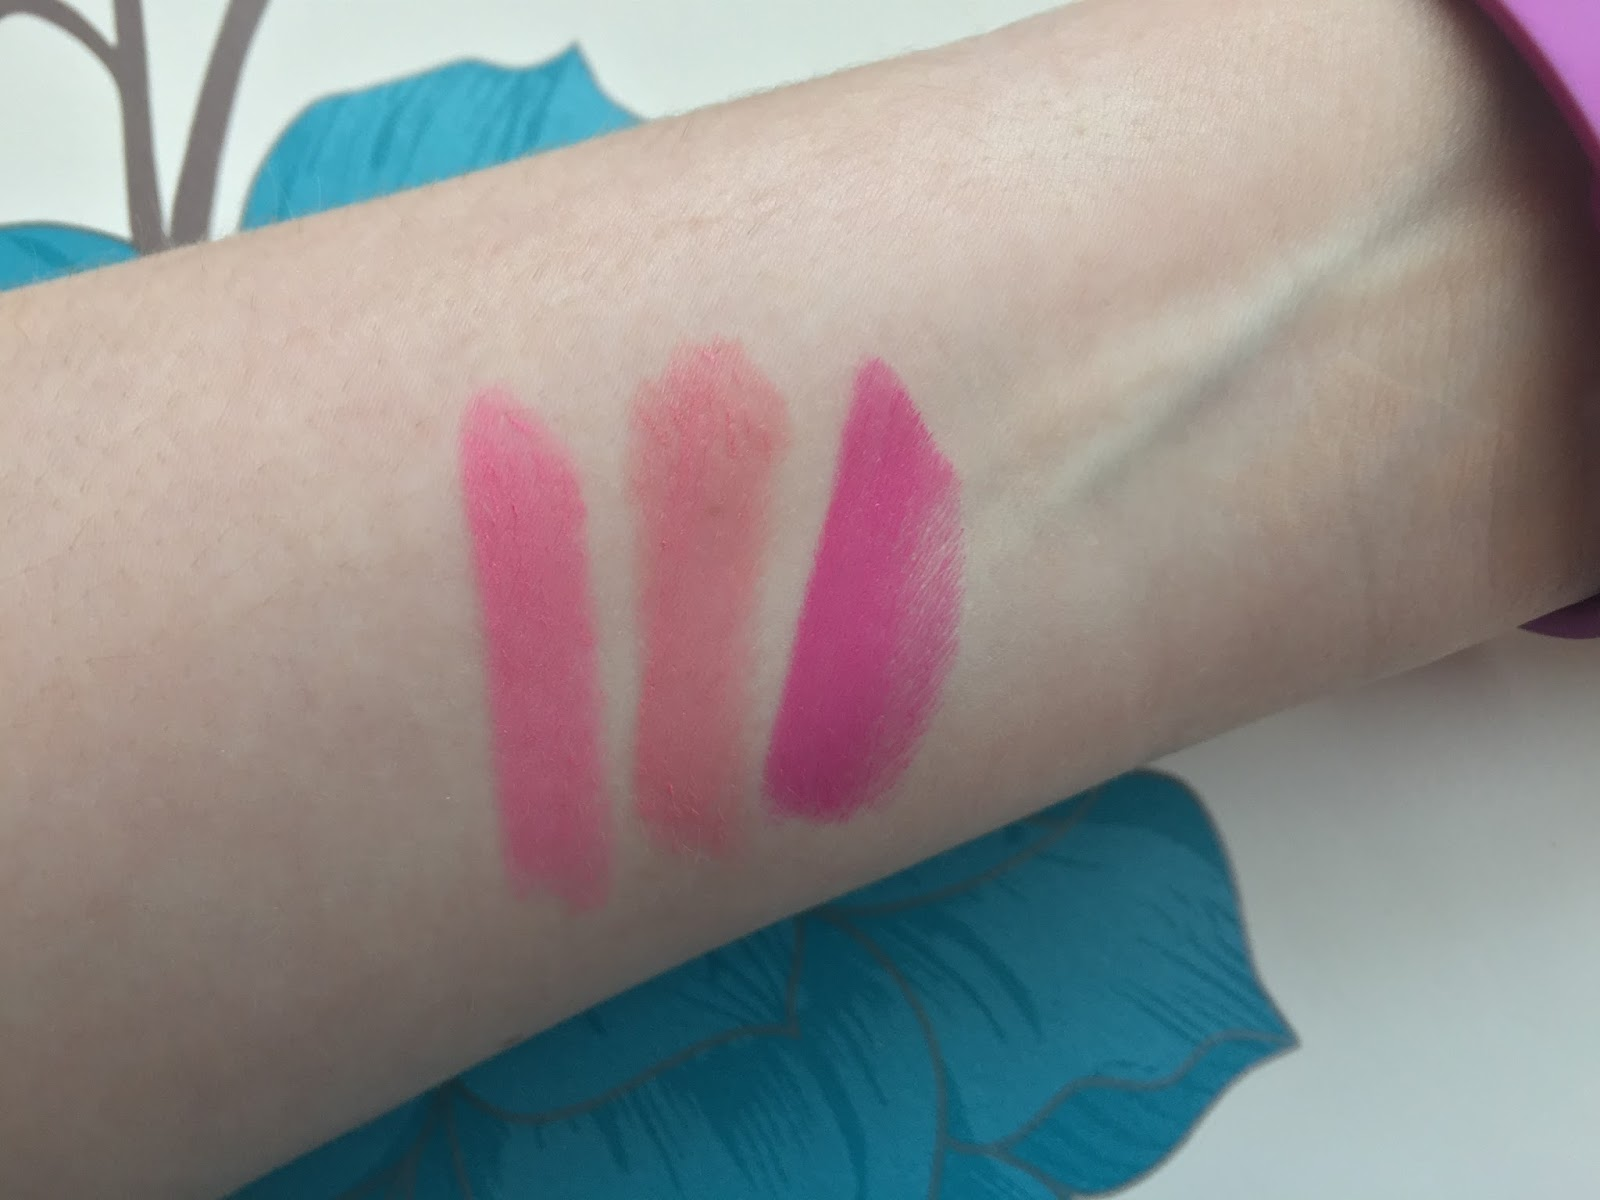 L'Oreal Color Riche Lipsticks Swatched